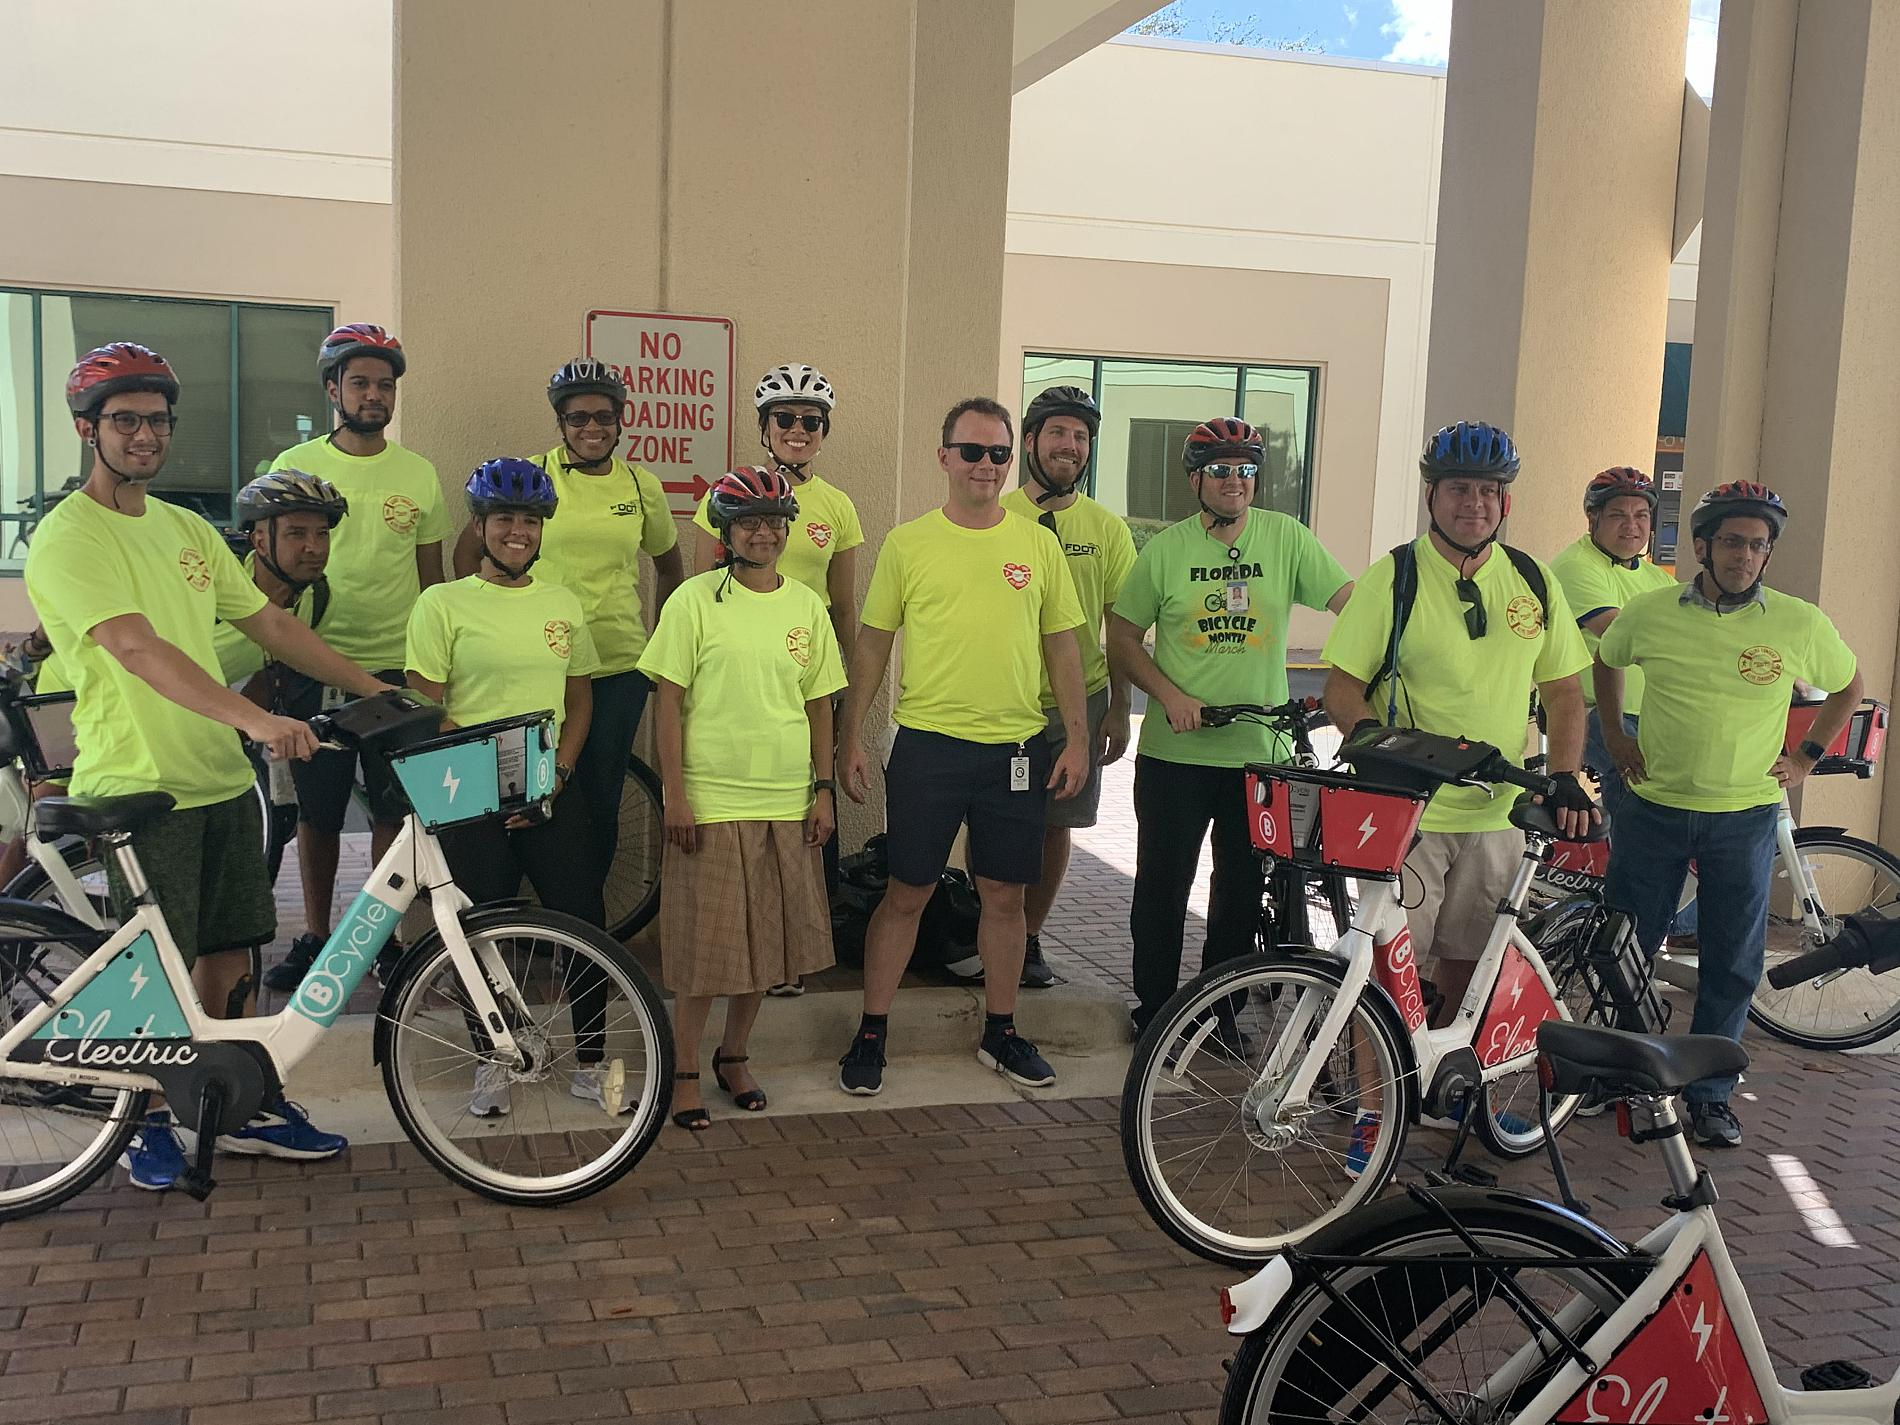 FDOT staff at Mobility Week event